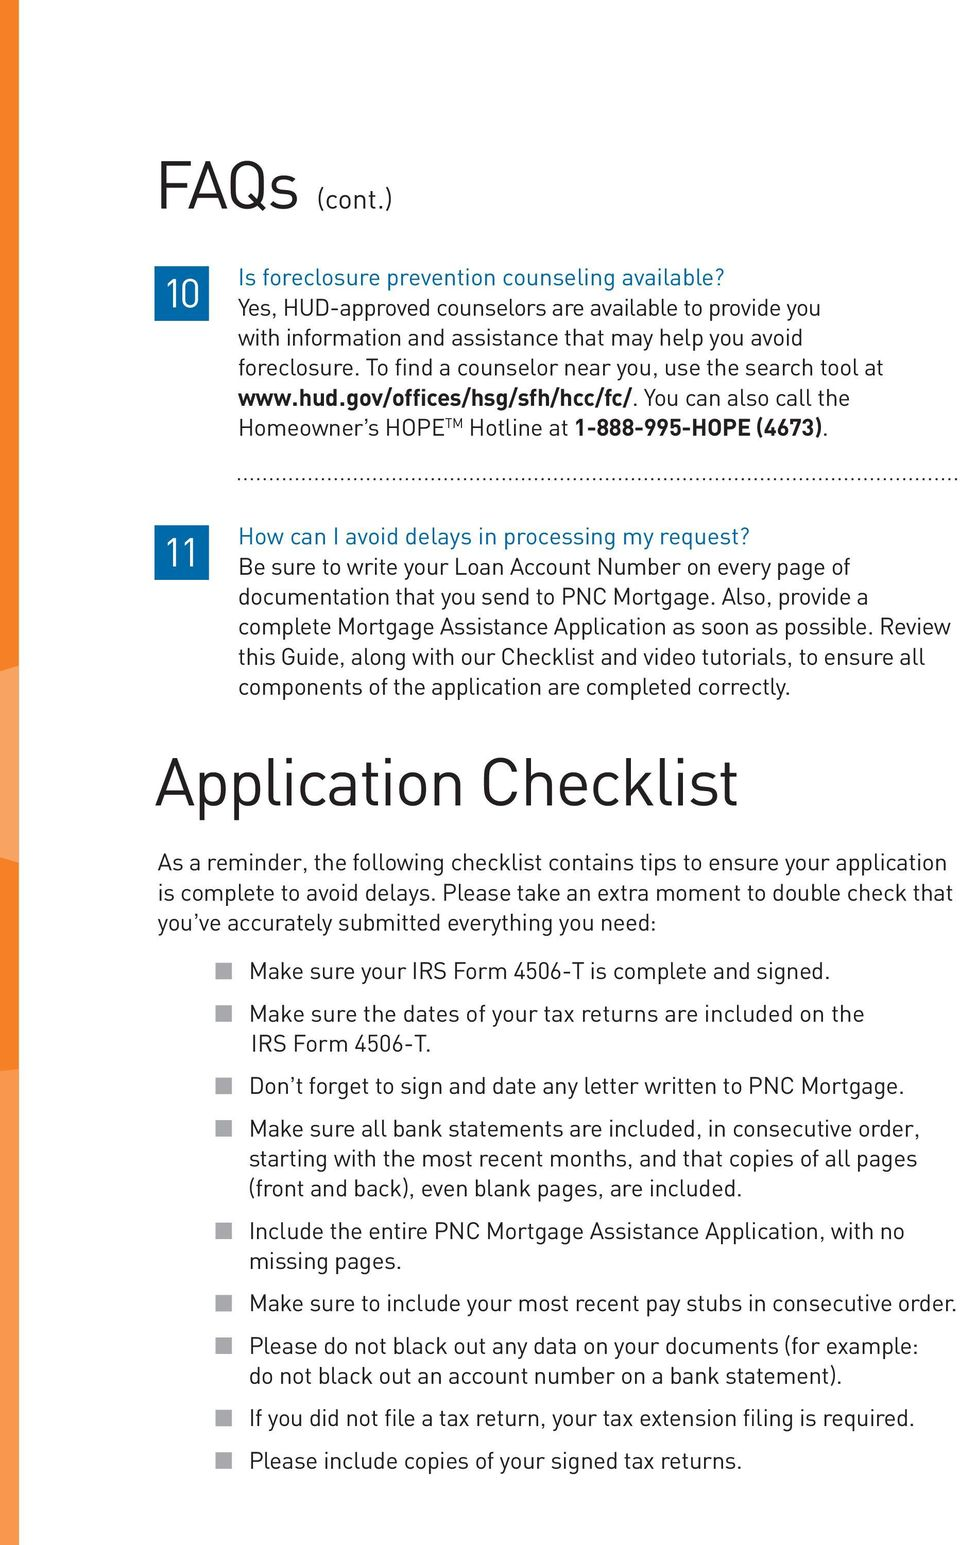 11 How can I avoid delays in processing my request? Be sure to write your Loan Account Number on every page of documentation that you send to PNC Mortgage.